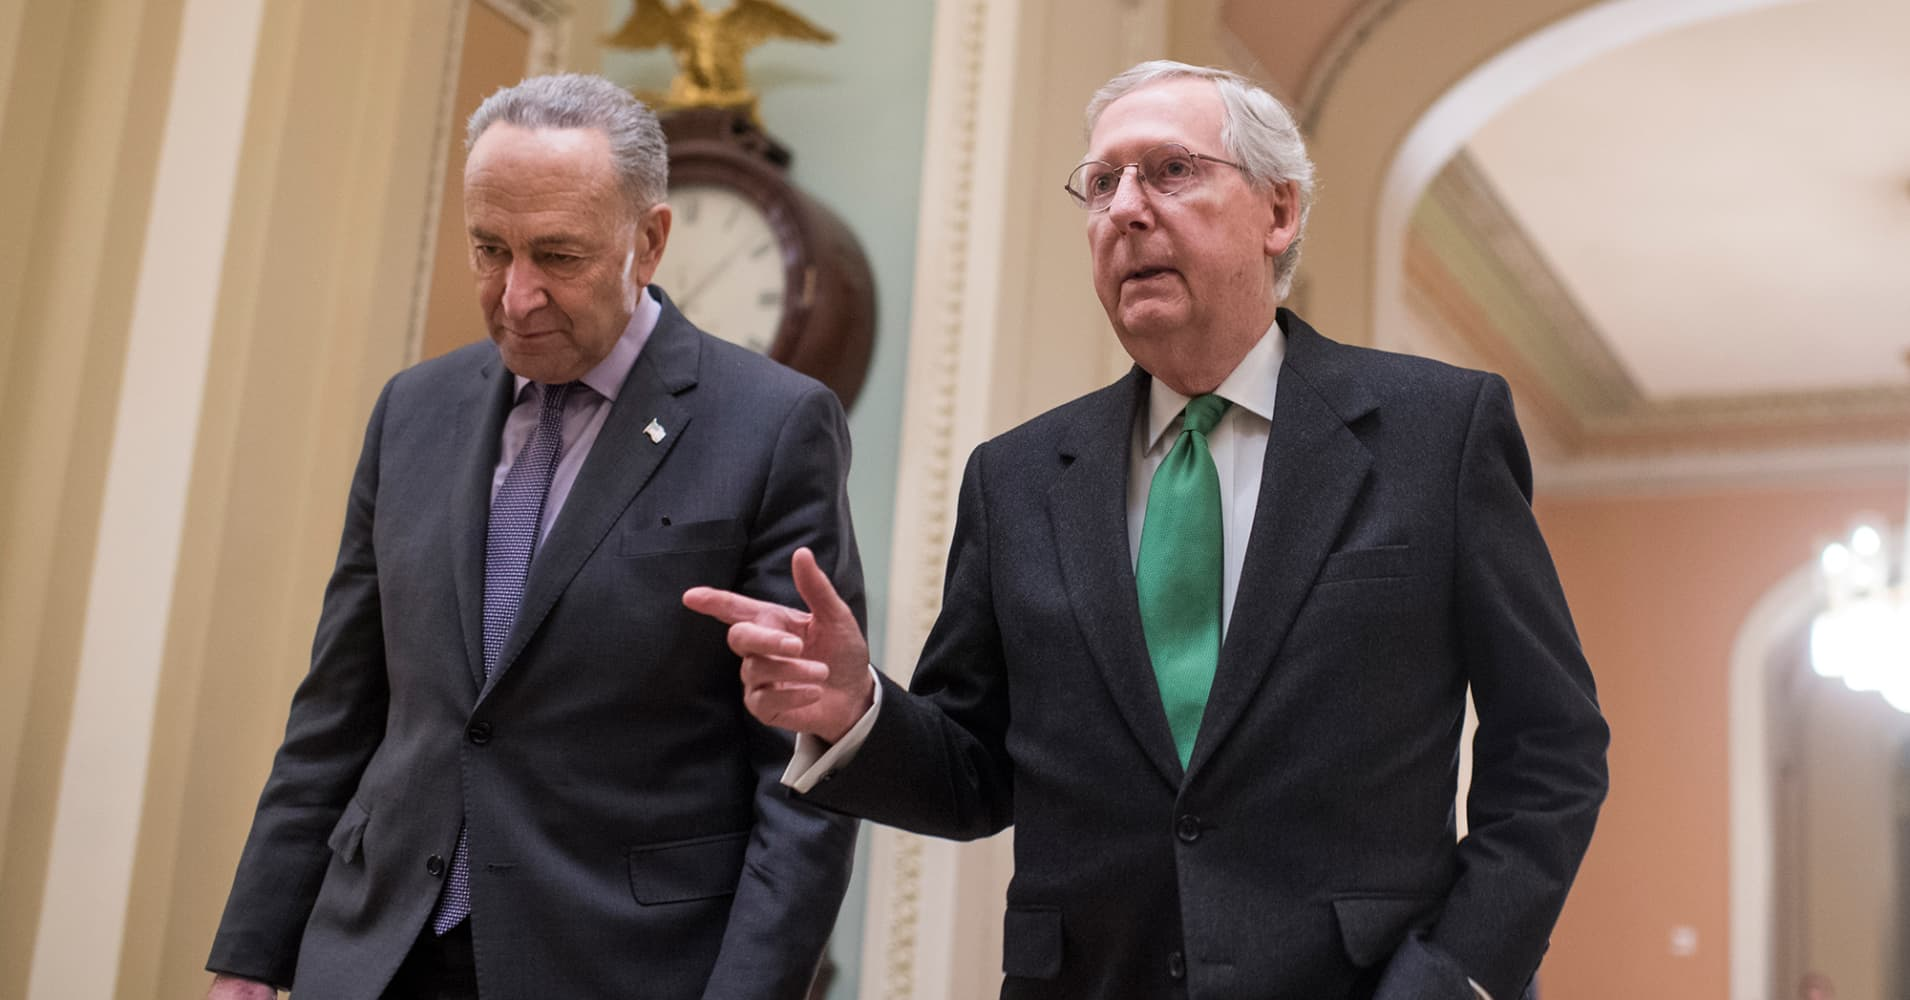 Chuck Schumer and Mitch McConnell re-elected as Senate picks leadership for next Congress